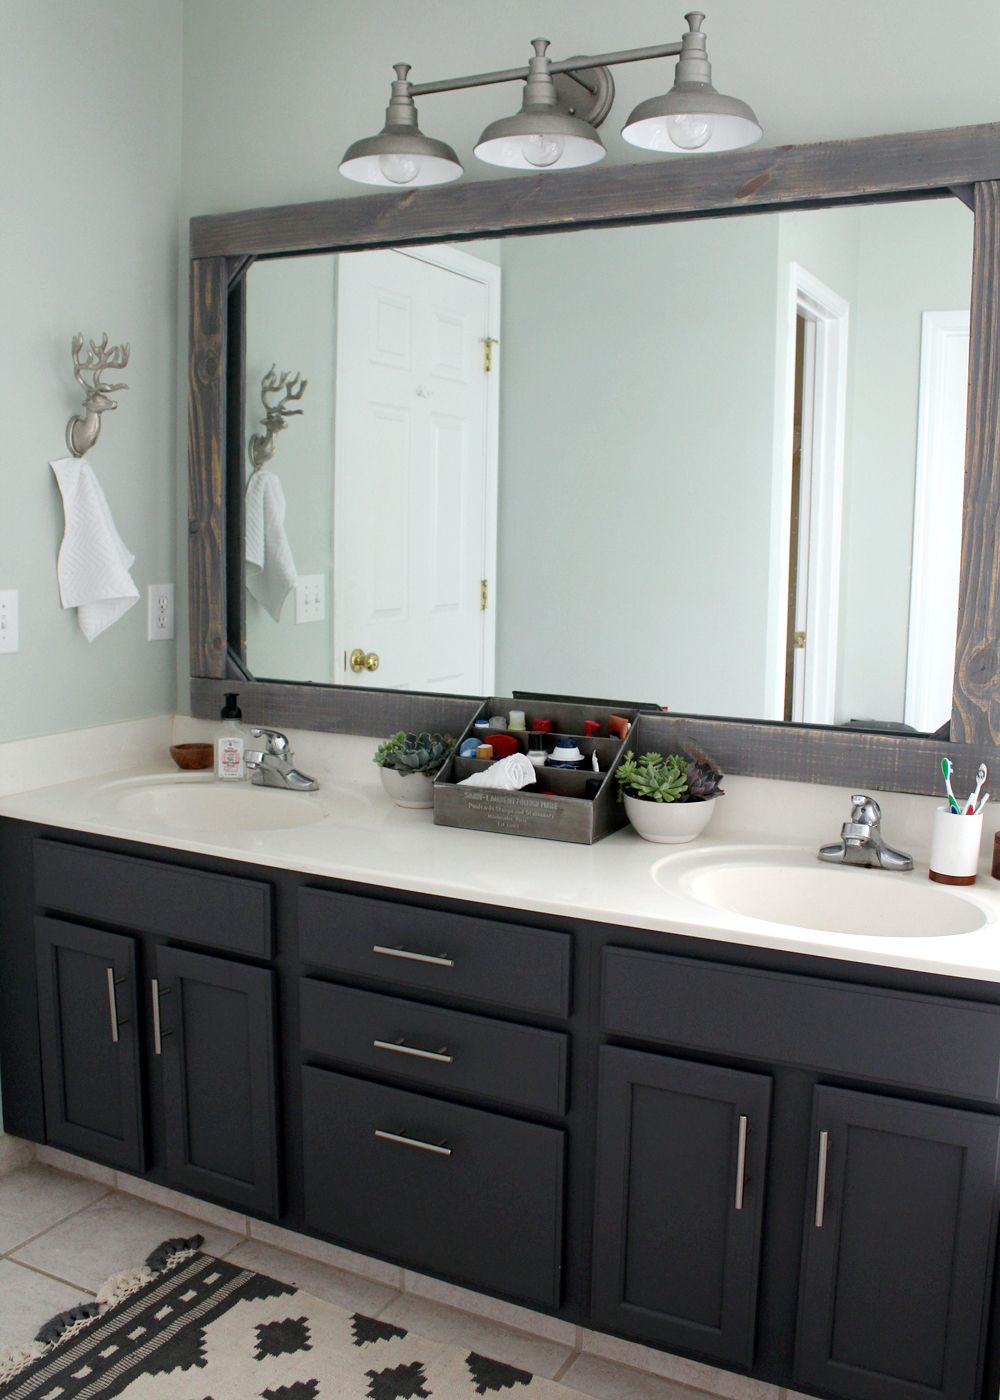 Master Bathroom Remodel Pinterest Master Bathrooms - Pinterest bathroom remodel on a budget